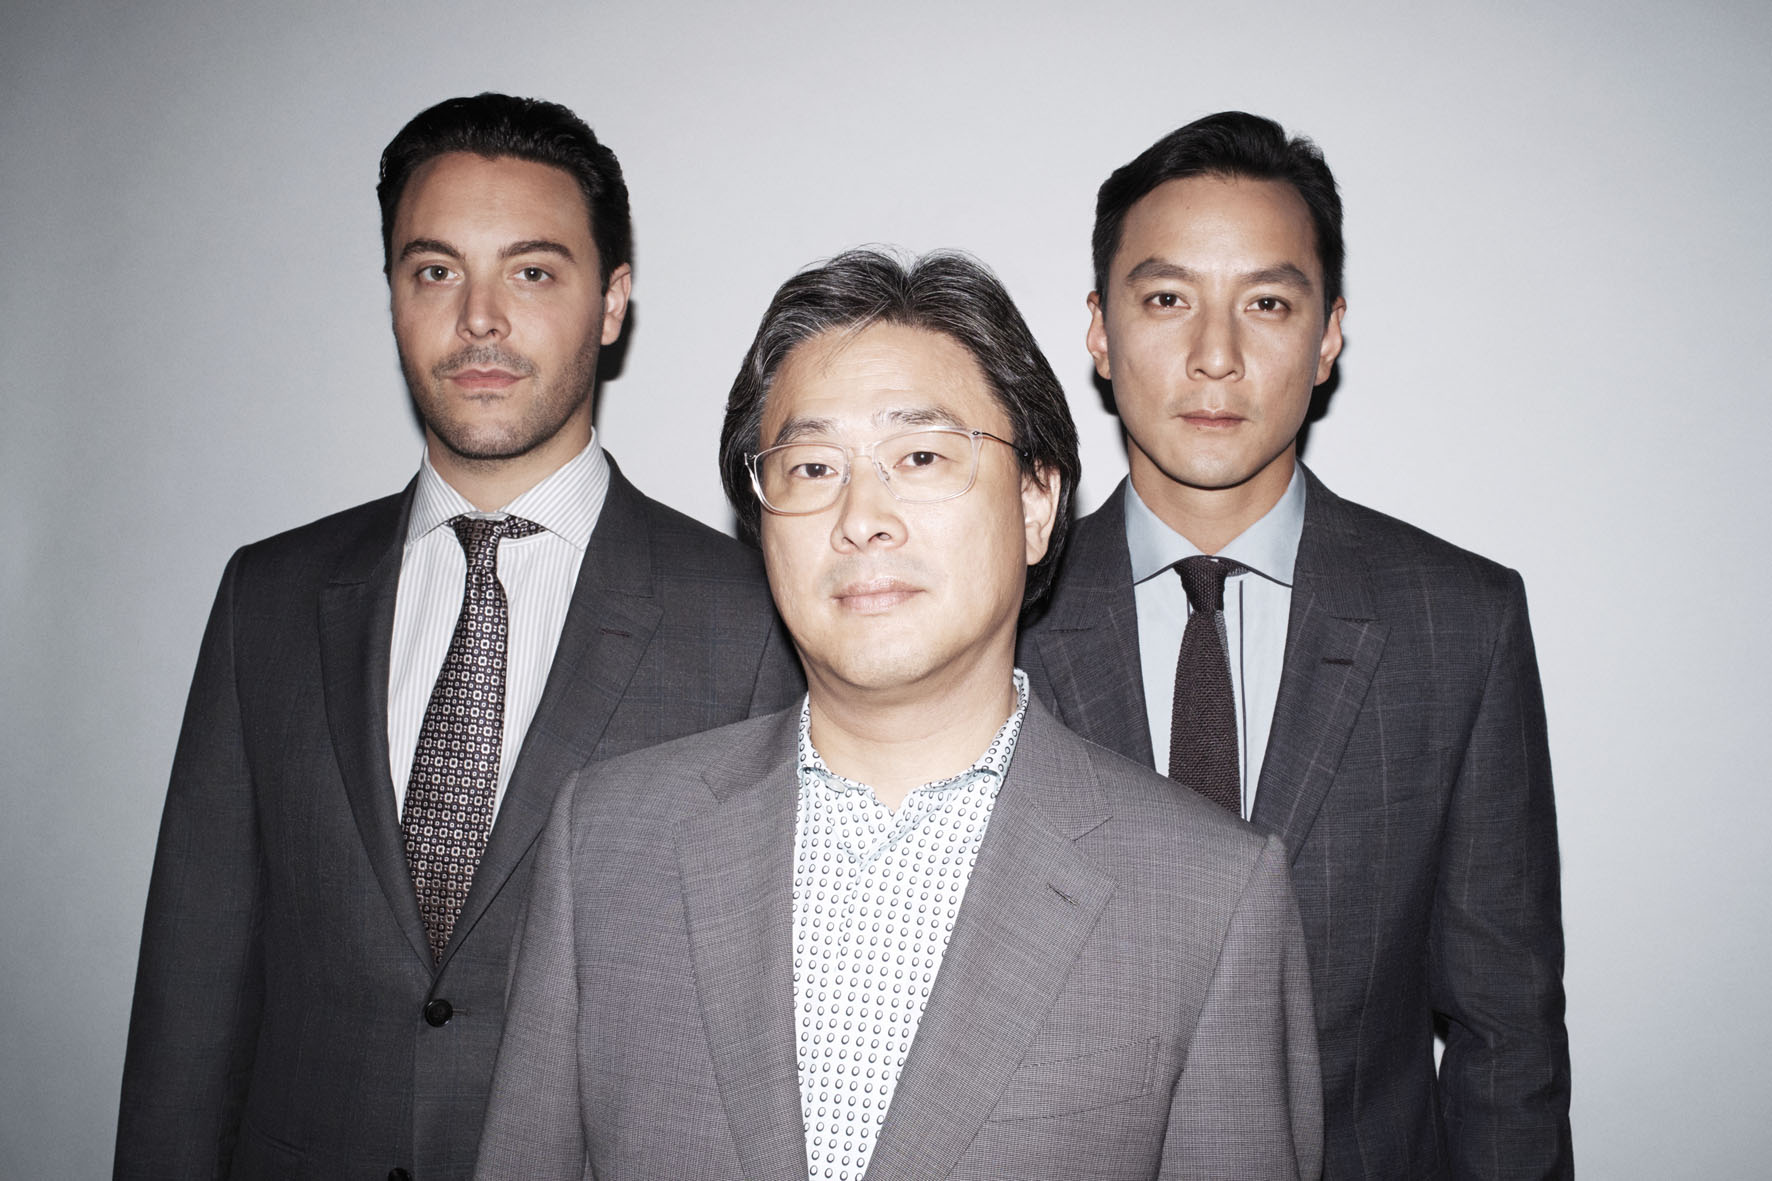 Park Chan-Wook, Jackson Huston and Daniel Wu for  Ermenegildo Zegna | Marco Pietracupa | Ermenegildo Zegna | F Magazine | Monica Rodegher | Numerique Retouch Photo Retouching Studio